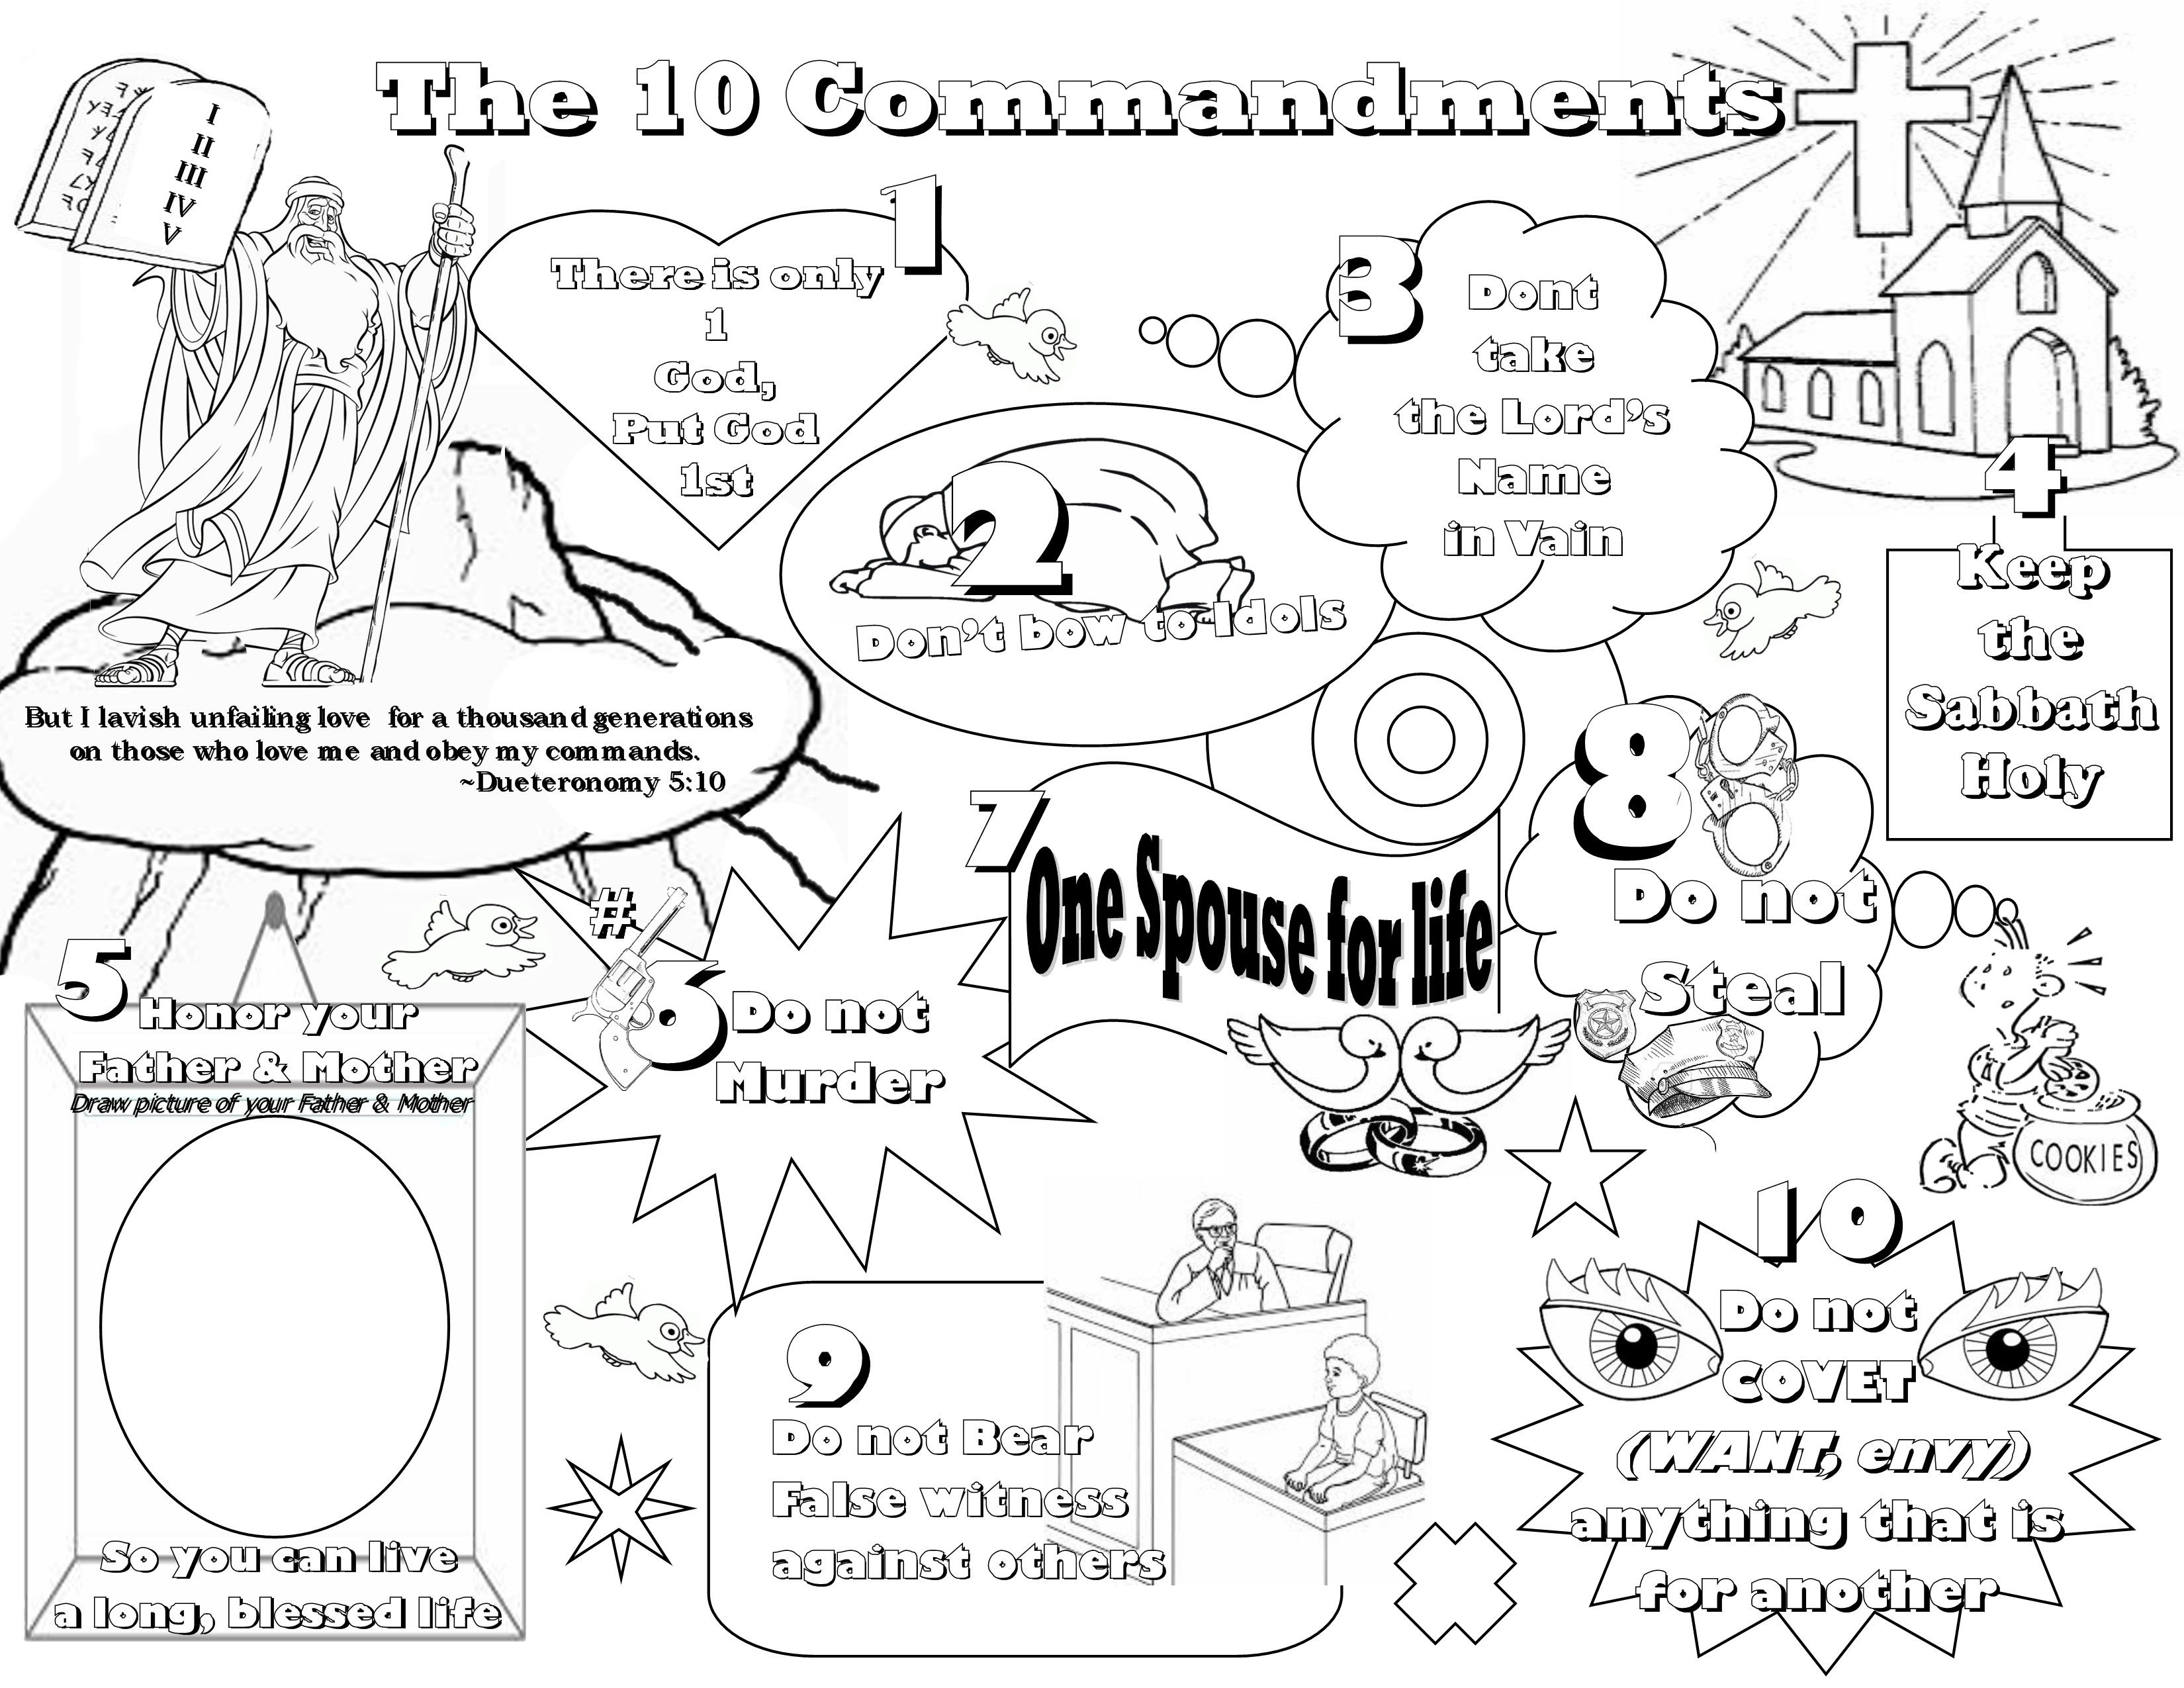 Exquisite Free Printable Ten Commandments Coloring Pages Do Not